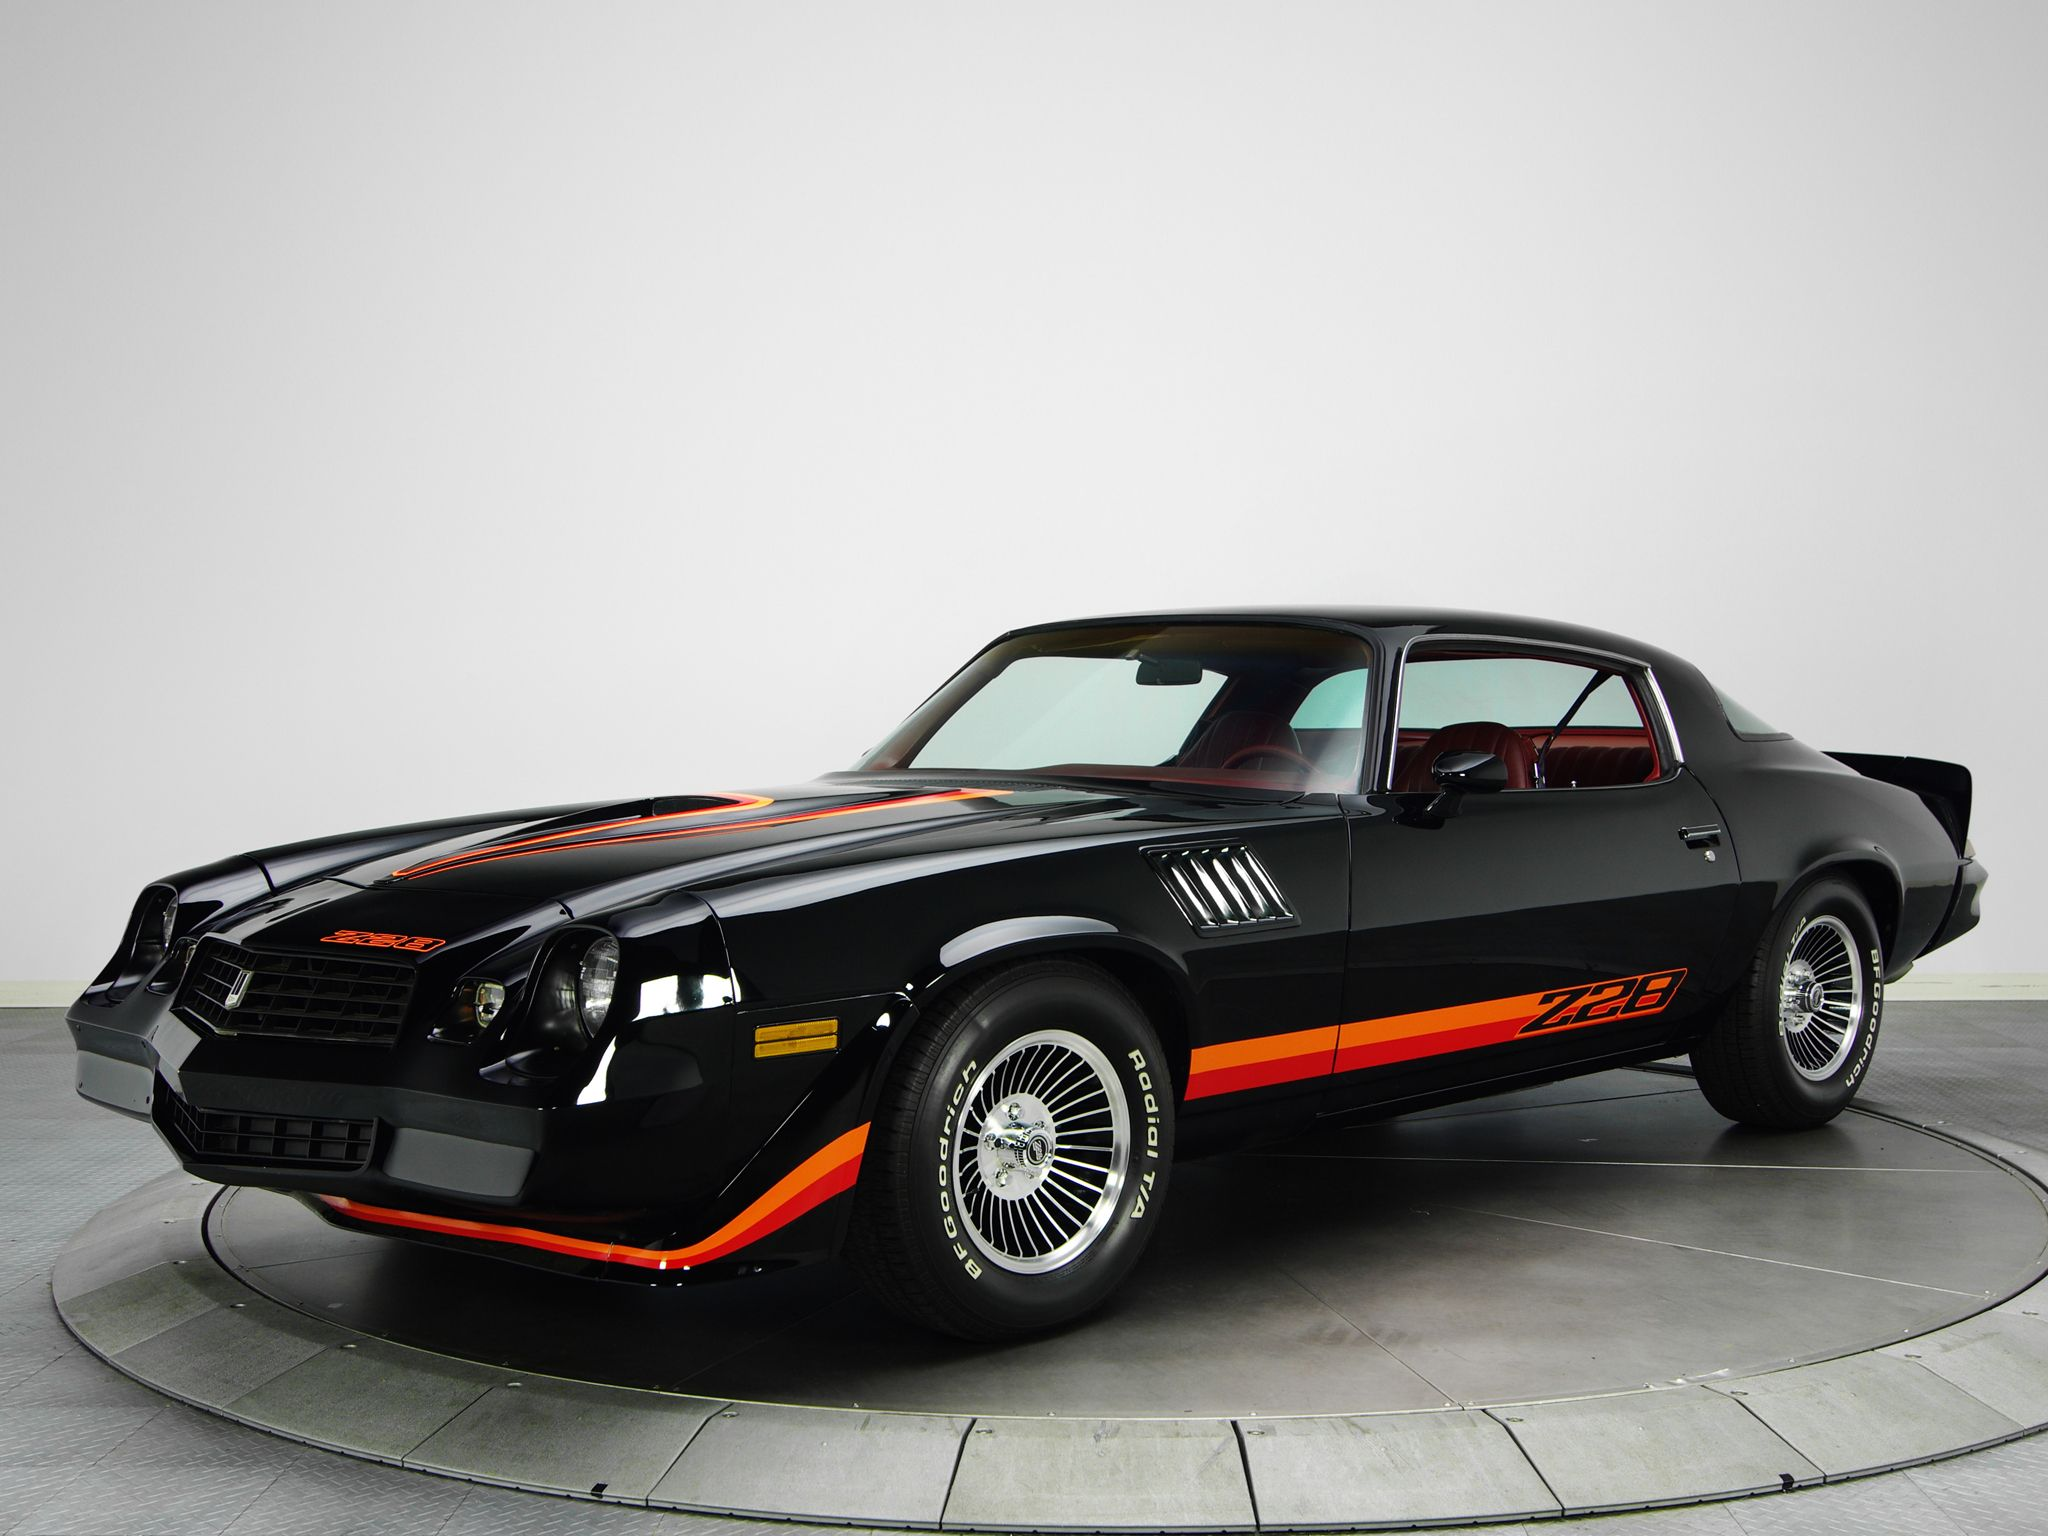 1981 camaro z28 chevrolet camaro z28 1978 1981 wallpaper 6